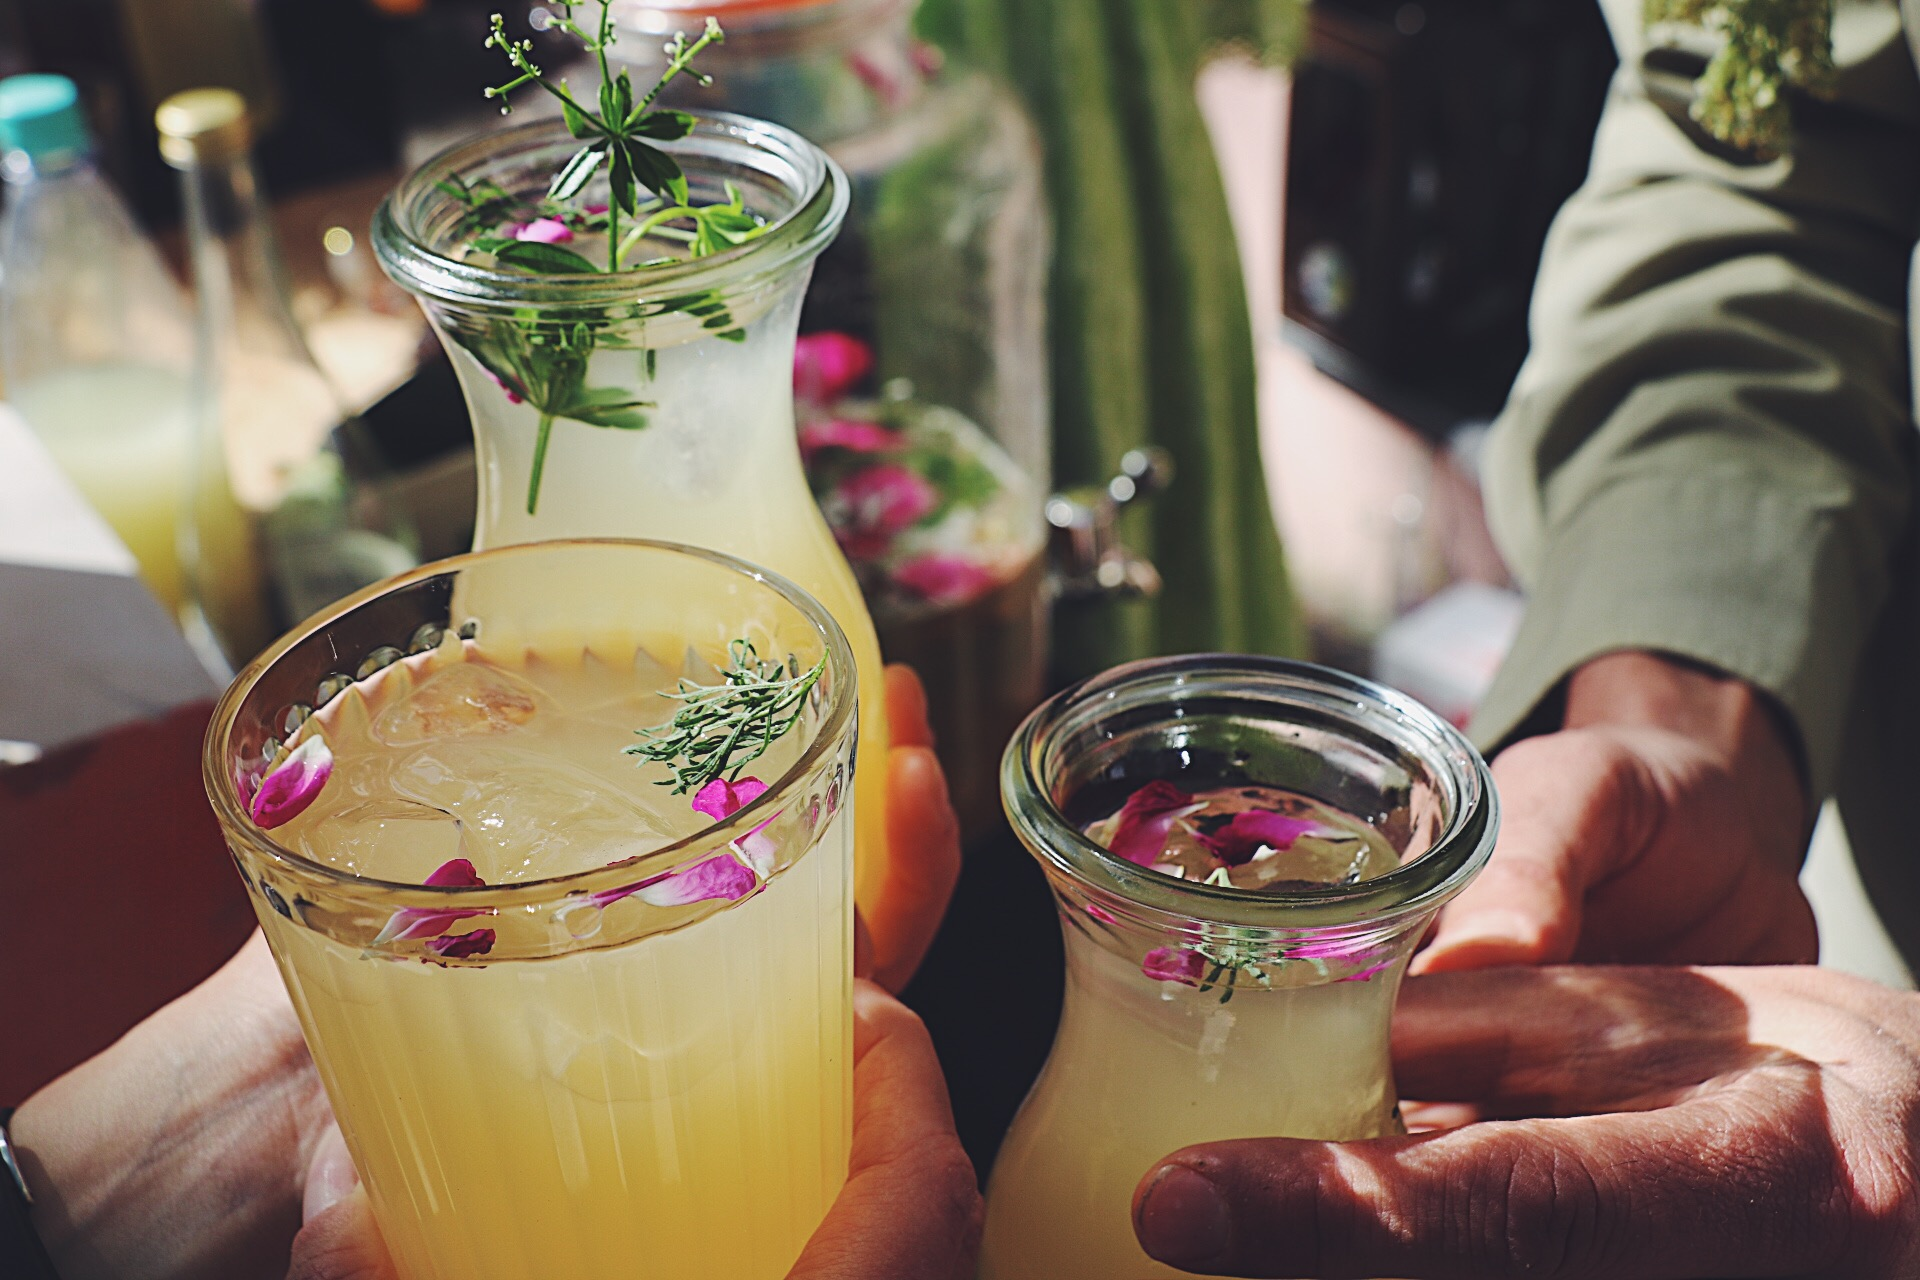 kombucha drinks with herbs and flowers